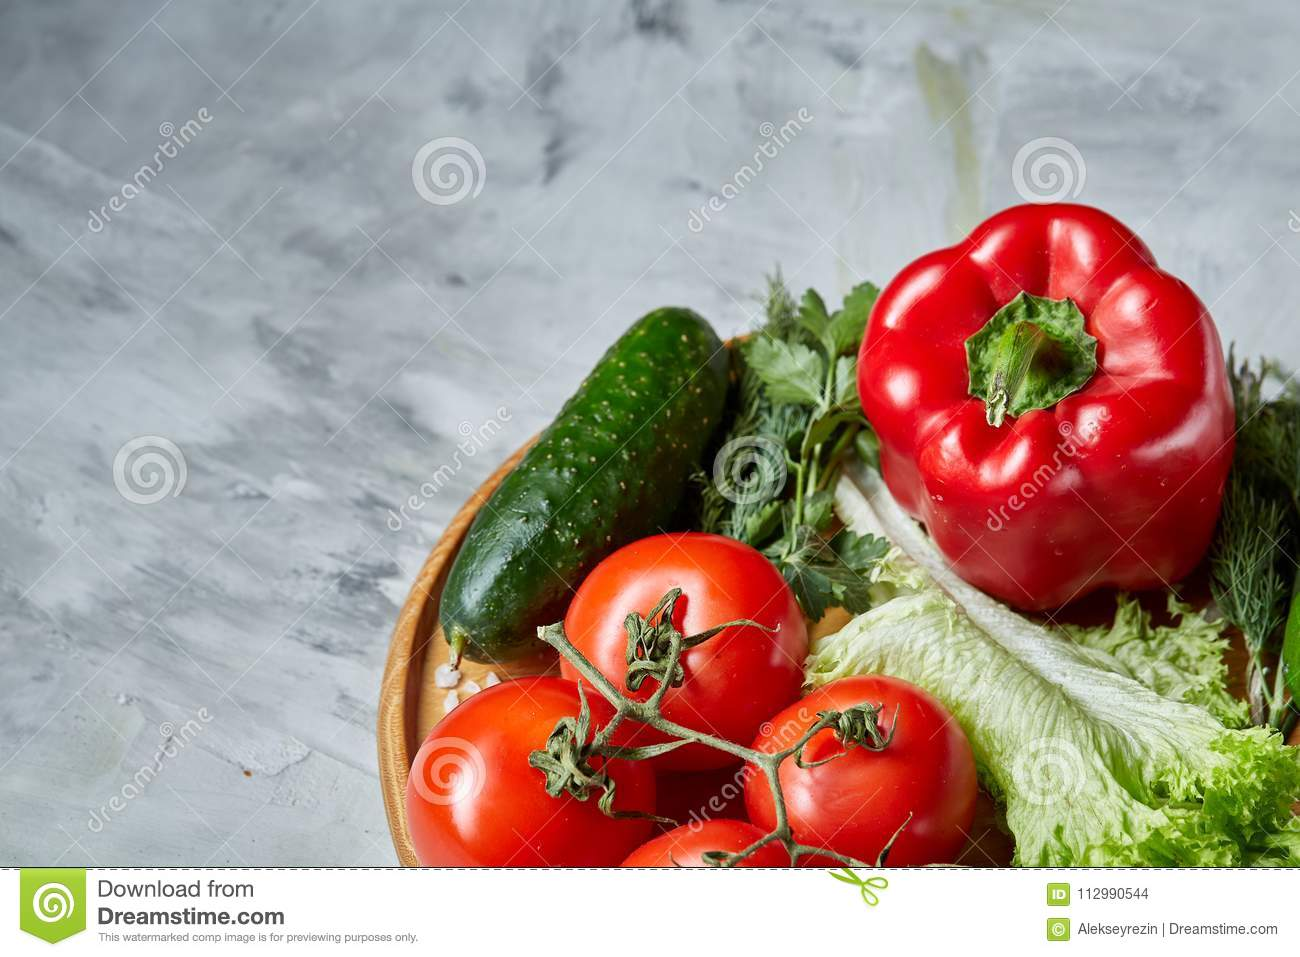 Still life of fresh organic vegetables on wooden plate over white background, selective focus, close-up